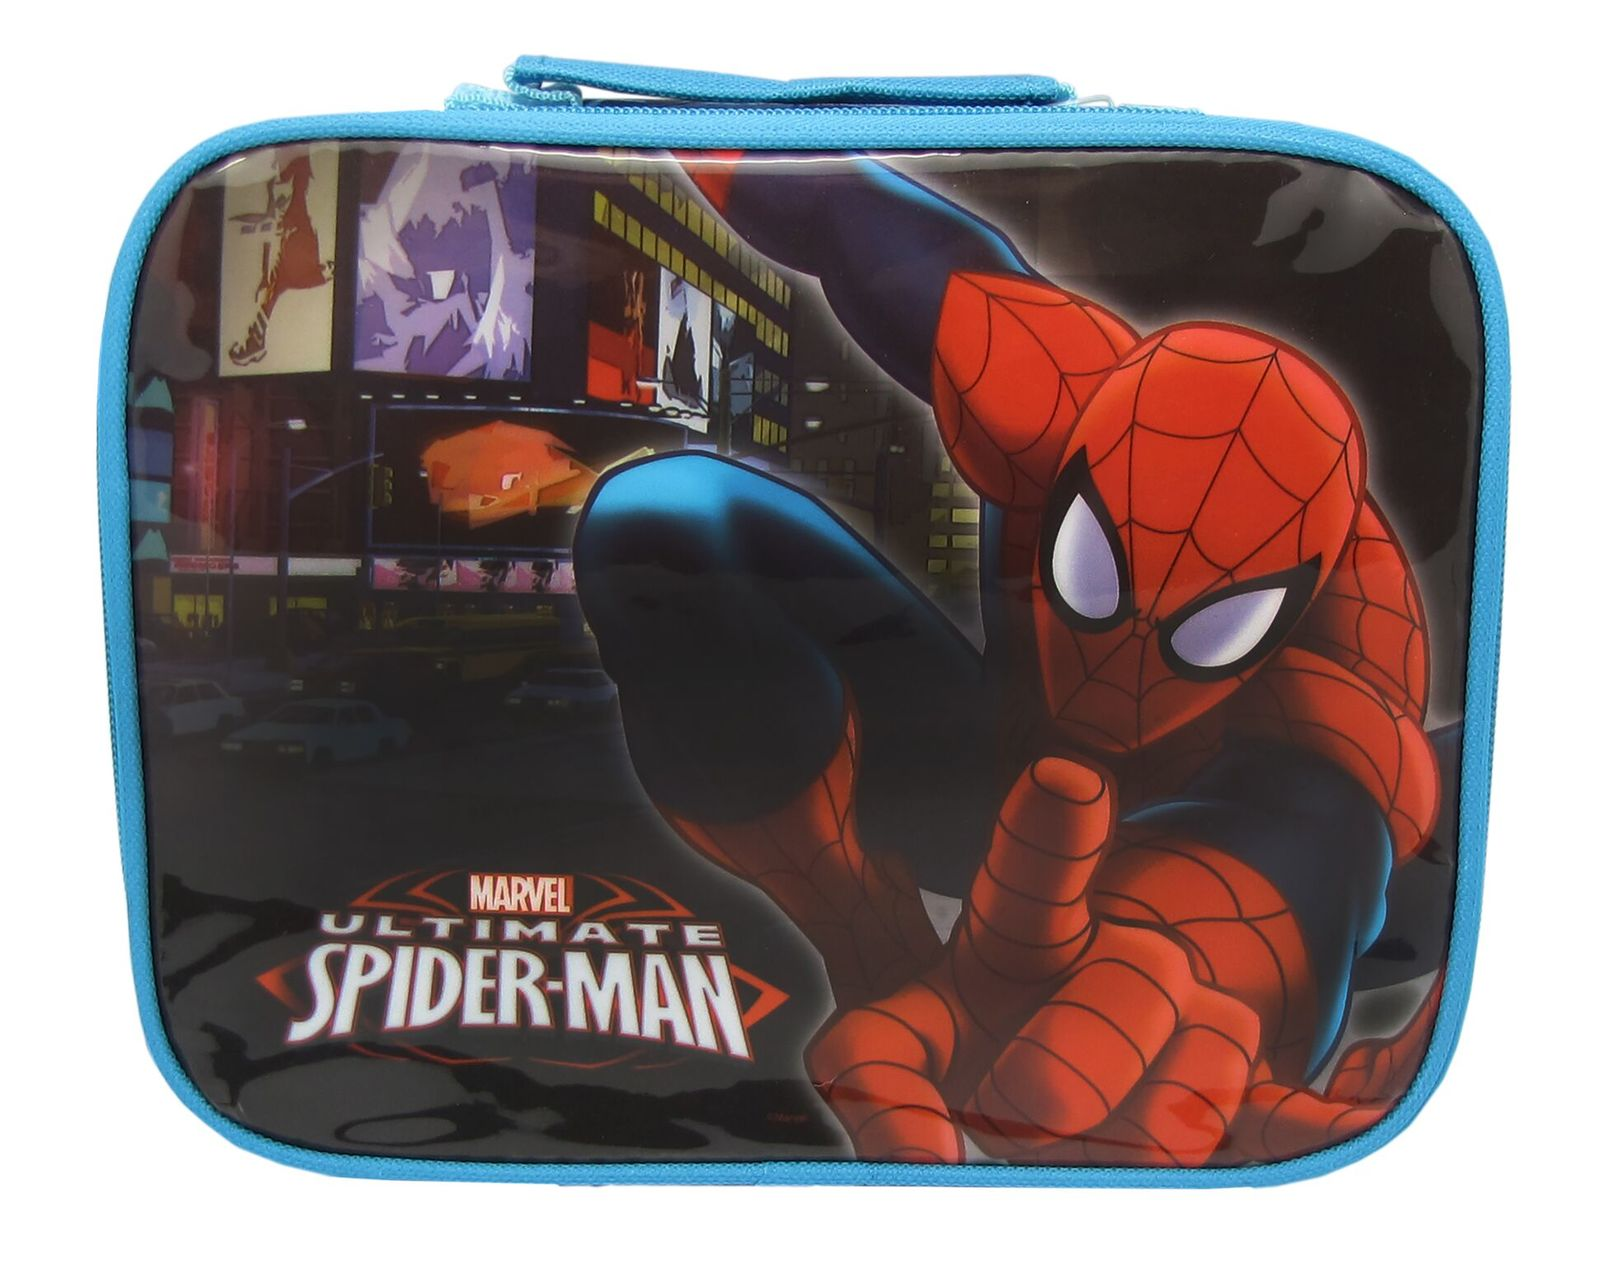 Marvel Spiderman Insulated Lunch Bag image